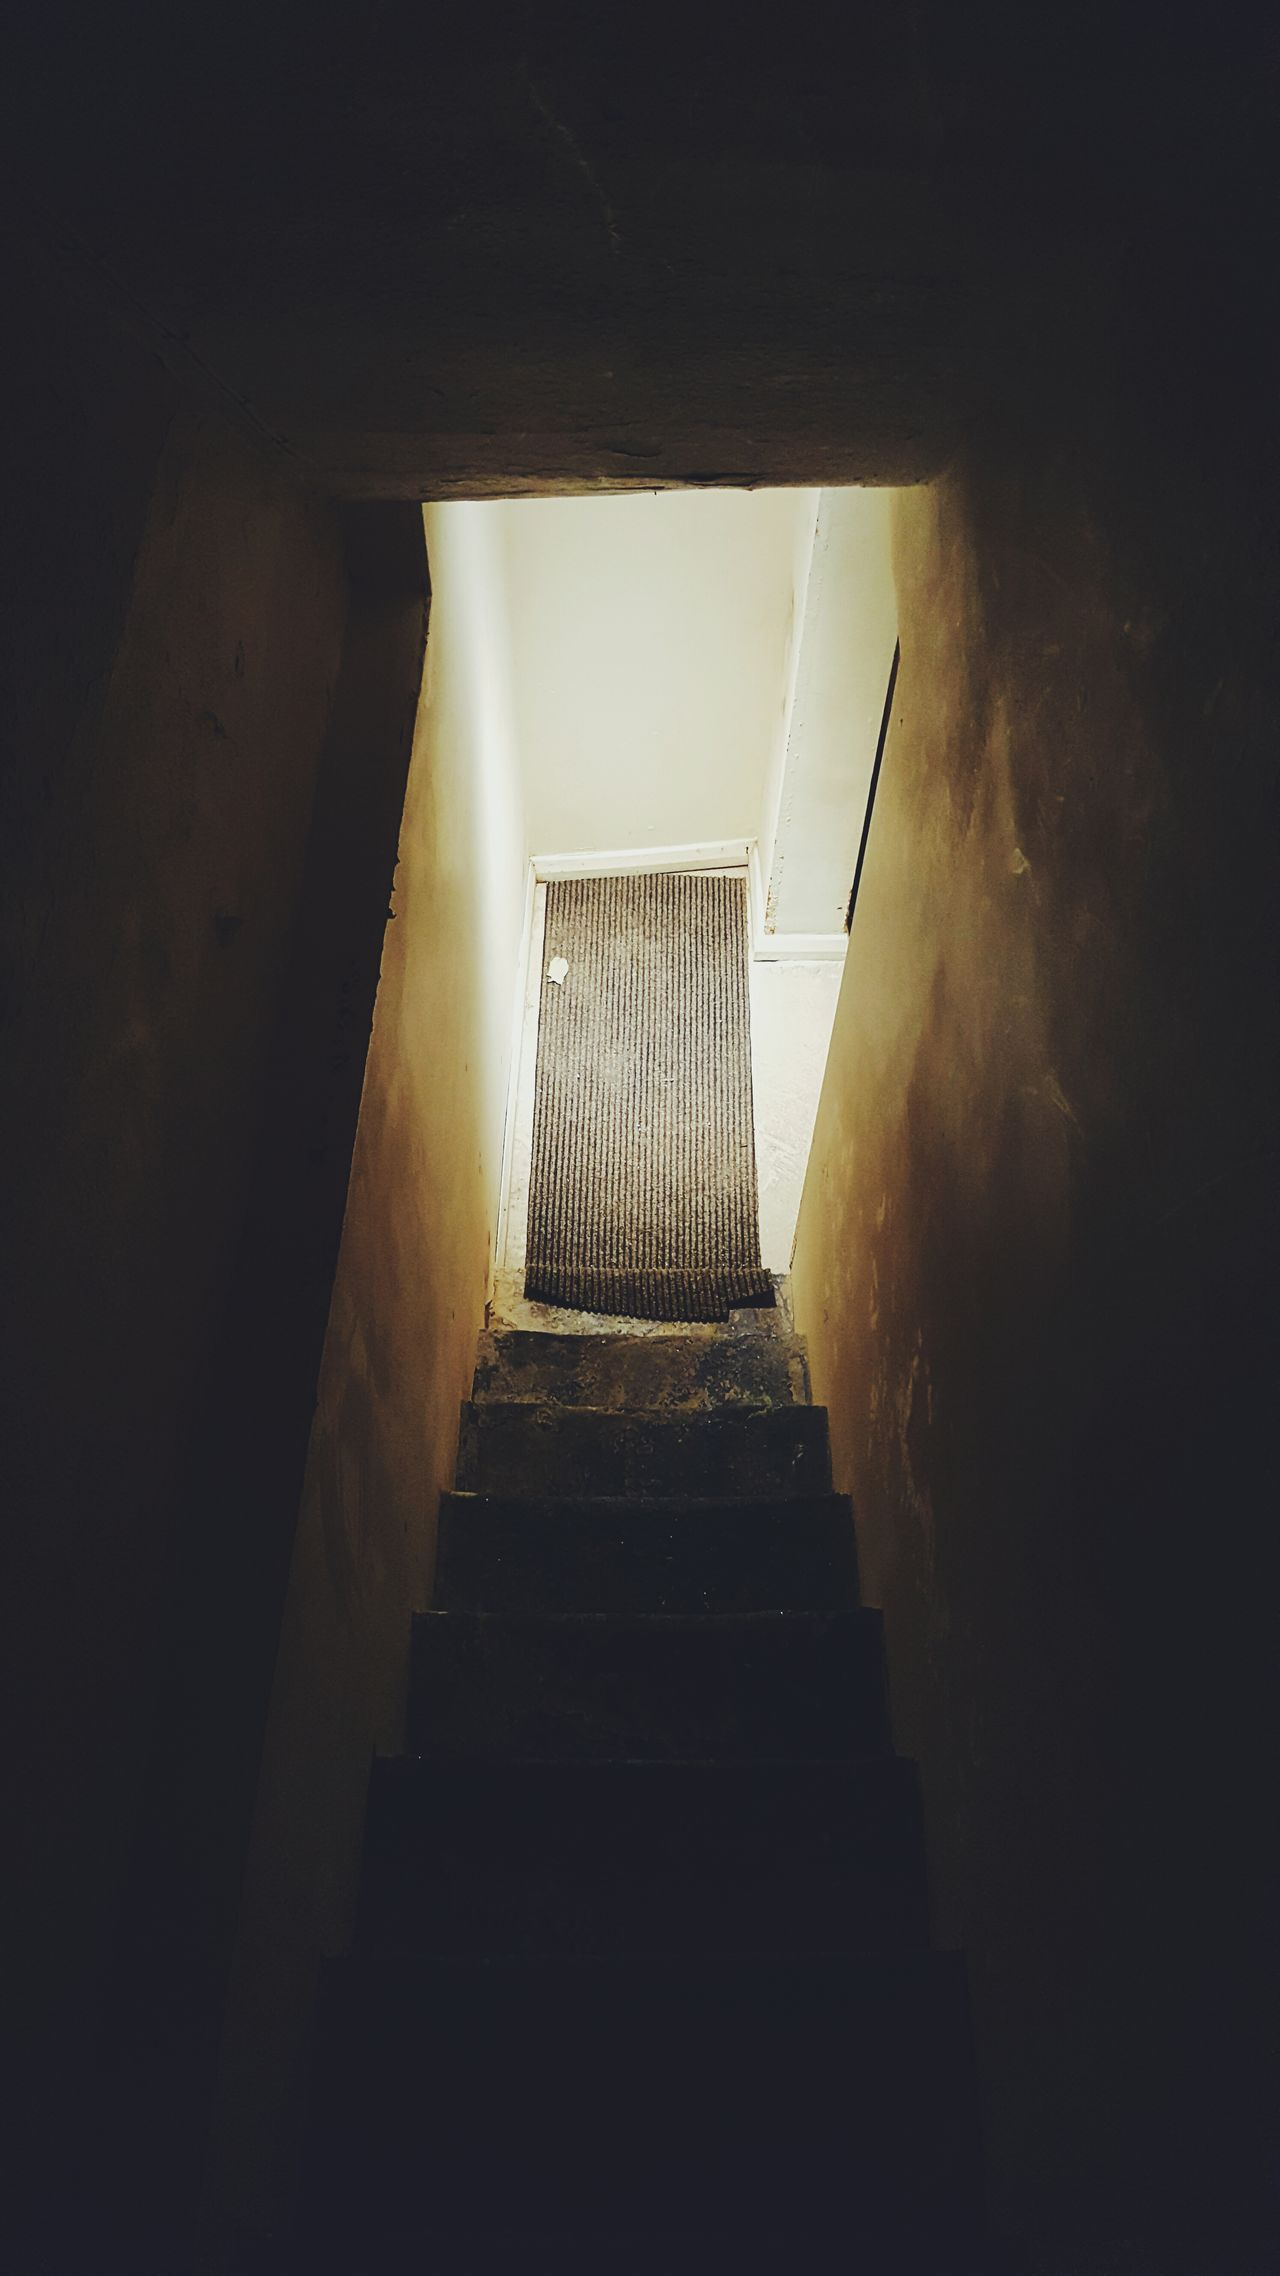 Location Scouting. Basements. Staircase Steps And Staircases Indoors  Steps Dark Built Structure Cellar No People Day Location Scouting Third Year University Short Film Lincolnshire VSCO VSCO Cam Samsung Galaxy S6 Samsungphotography